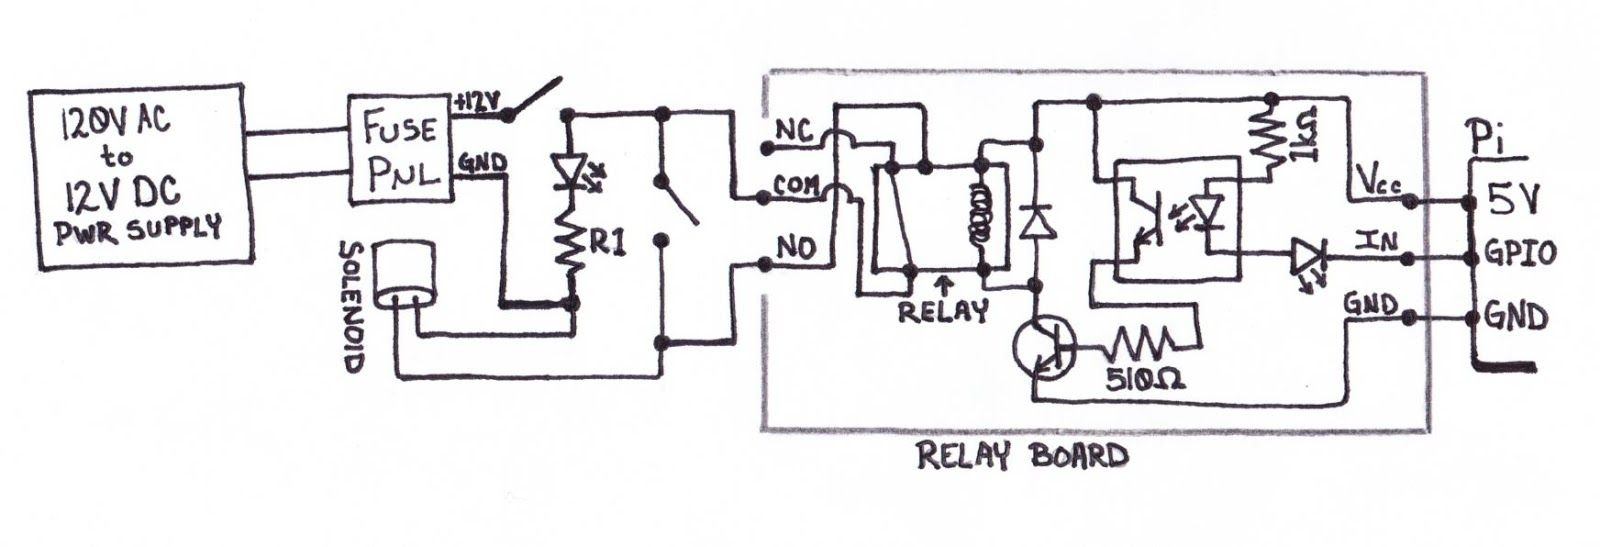 medium resolution of circuit diagram for operating a solenoid valve with a raspberry pi to control sprinklers to water the garden raspberry pi solenoid valve sprinklers